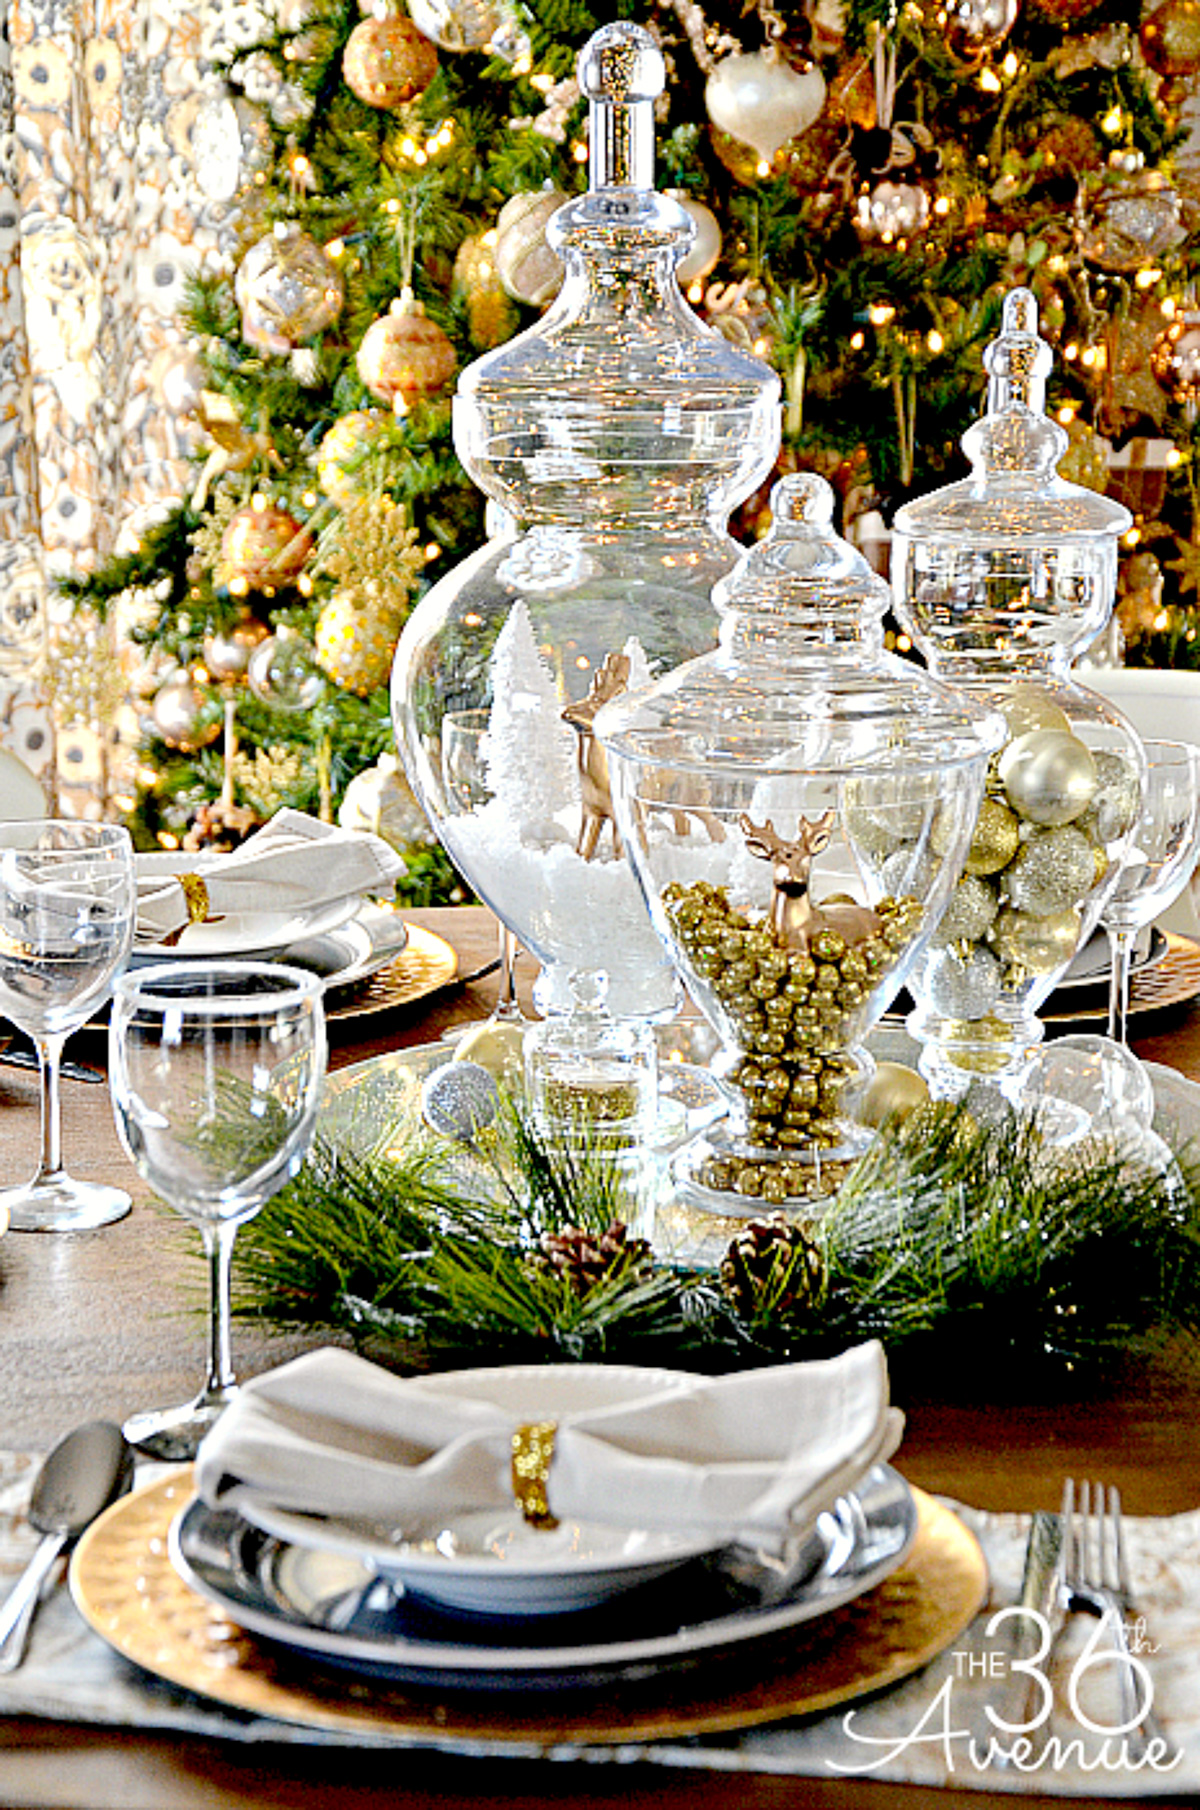 transform your tablescape with these 20 festive settings page 2 of 2 wandeleur. Black Bedroom Furniture Sets. Home Design Ideas